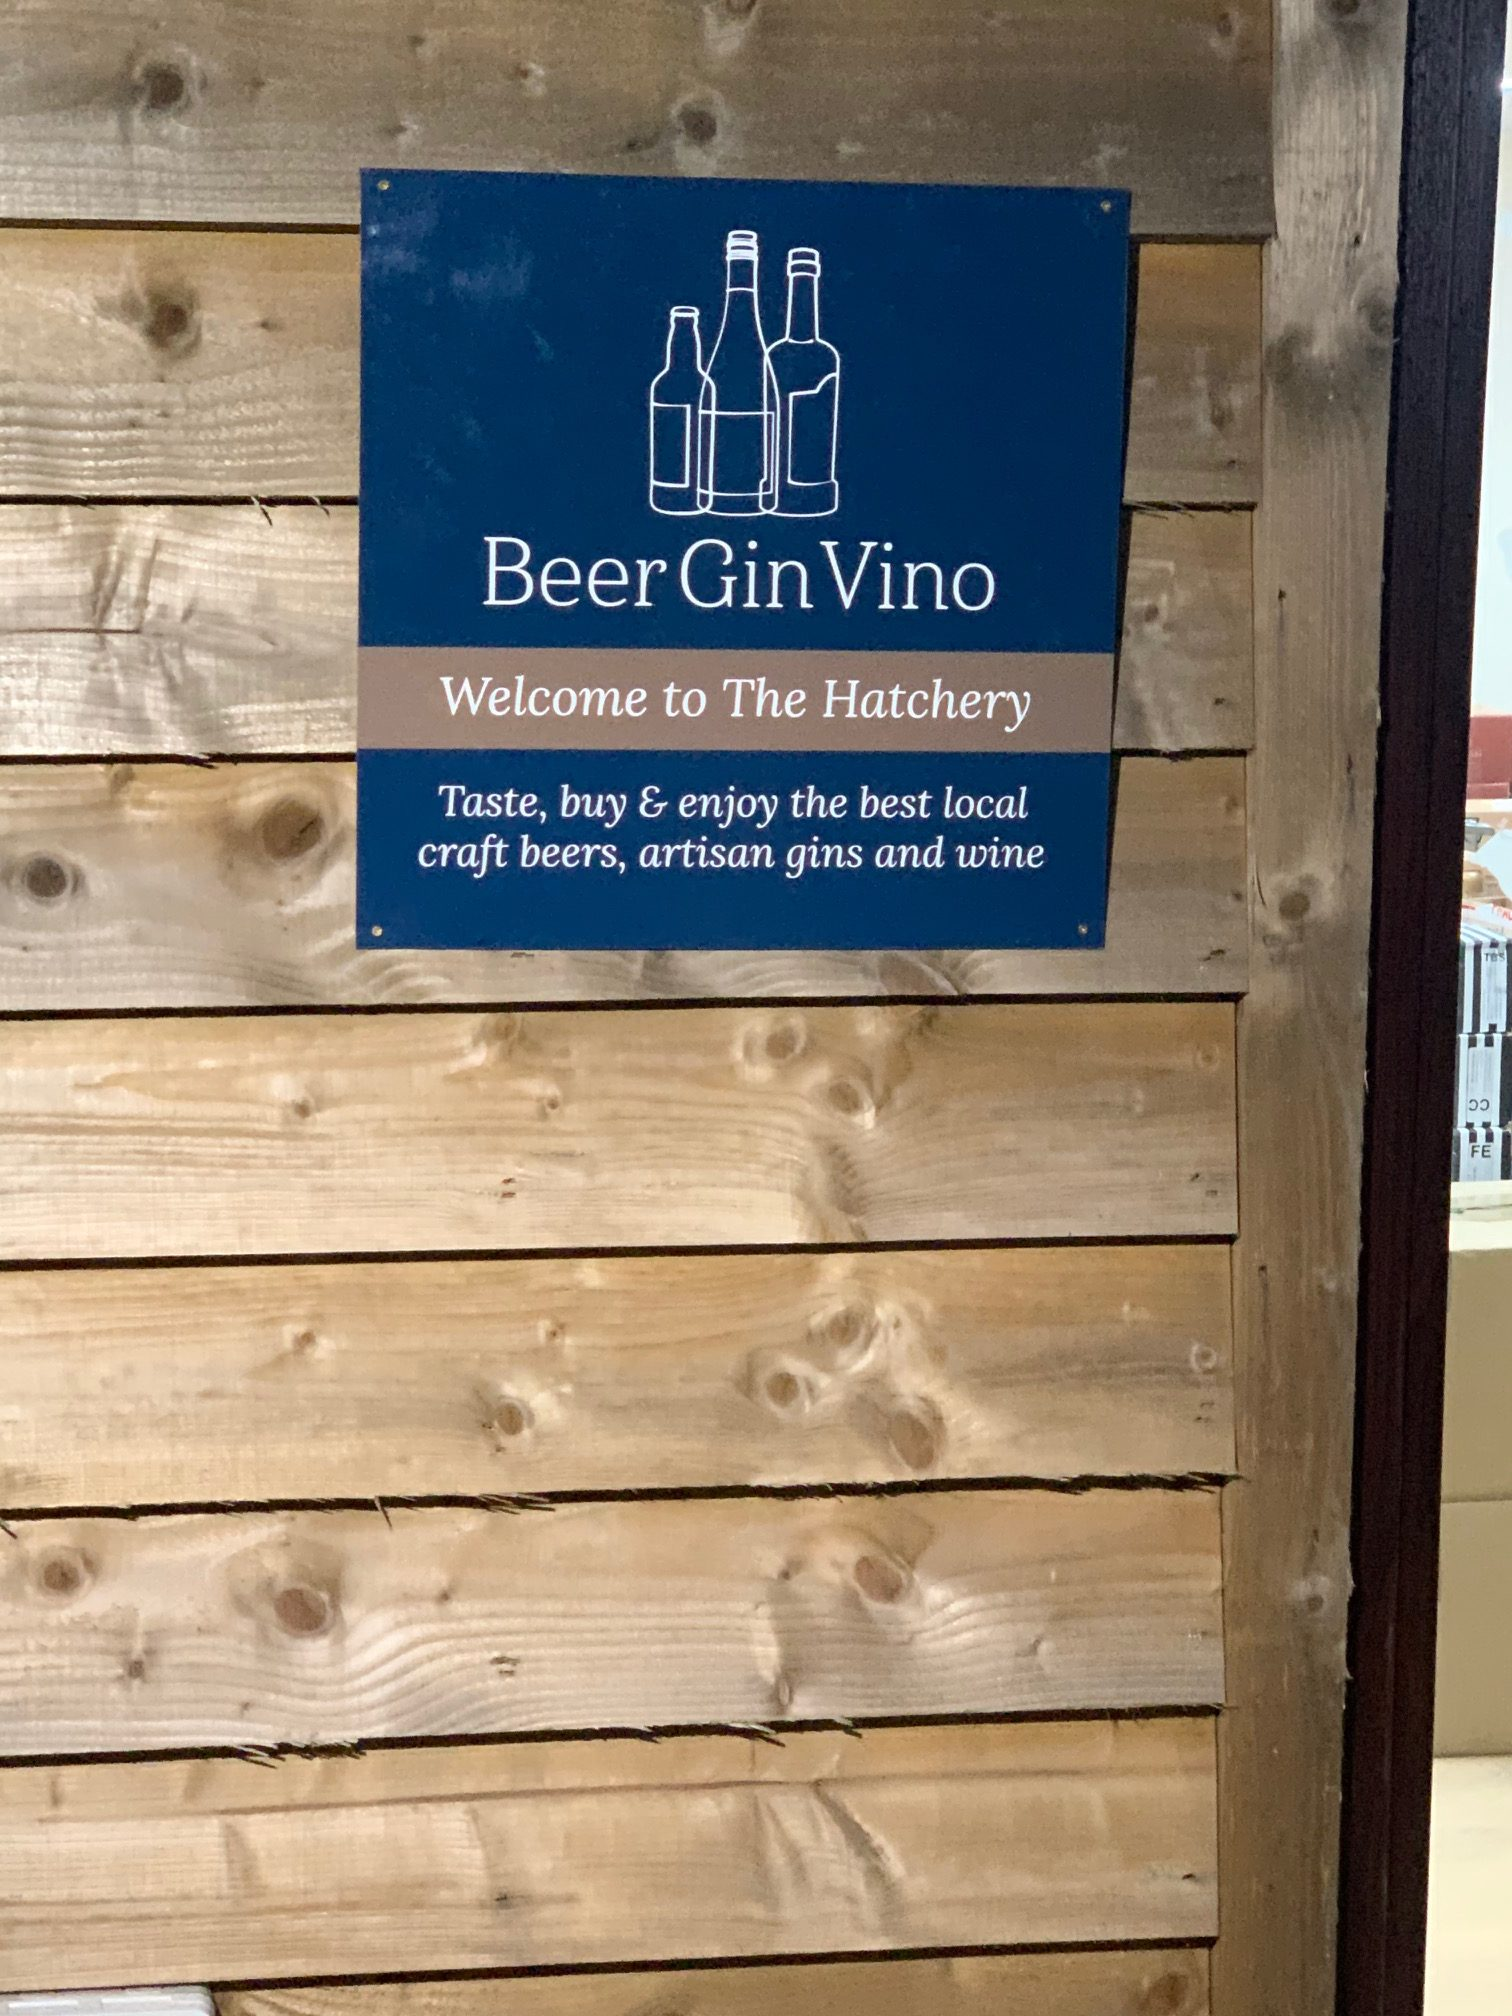 BeerGinVino new signs at the Hatchery, Haddenham